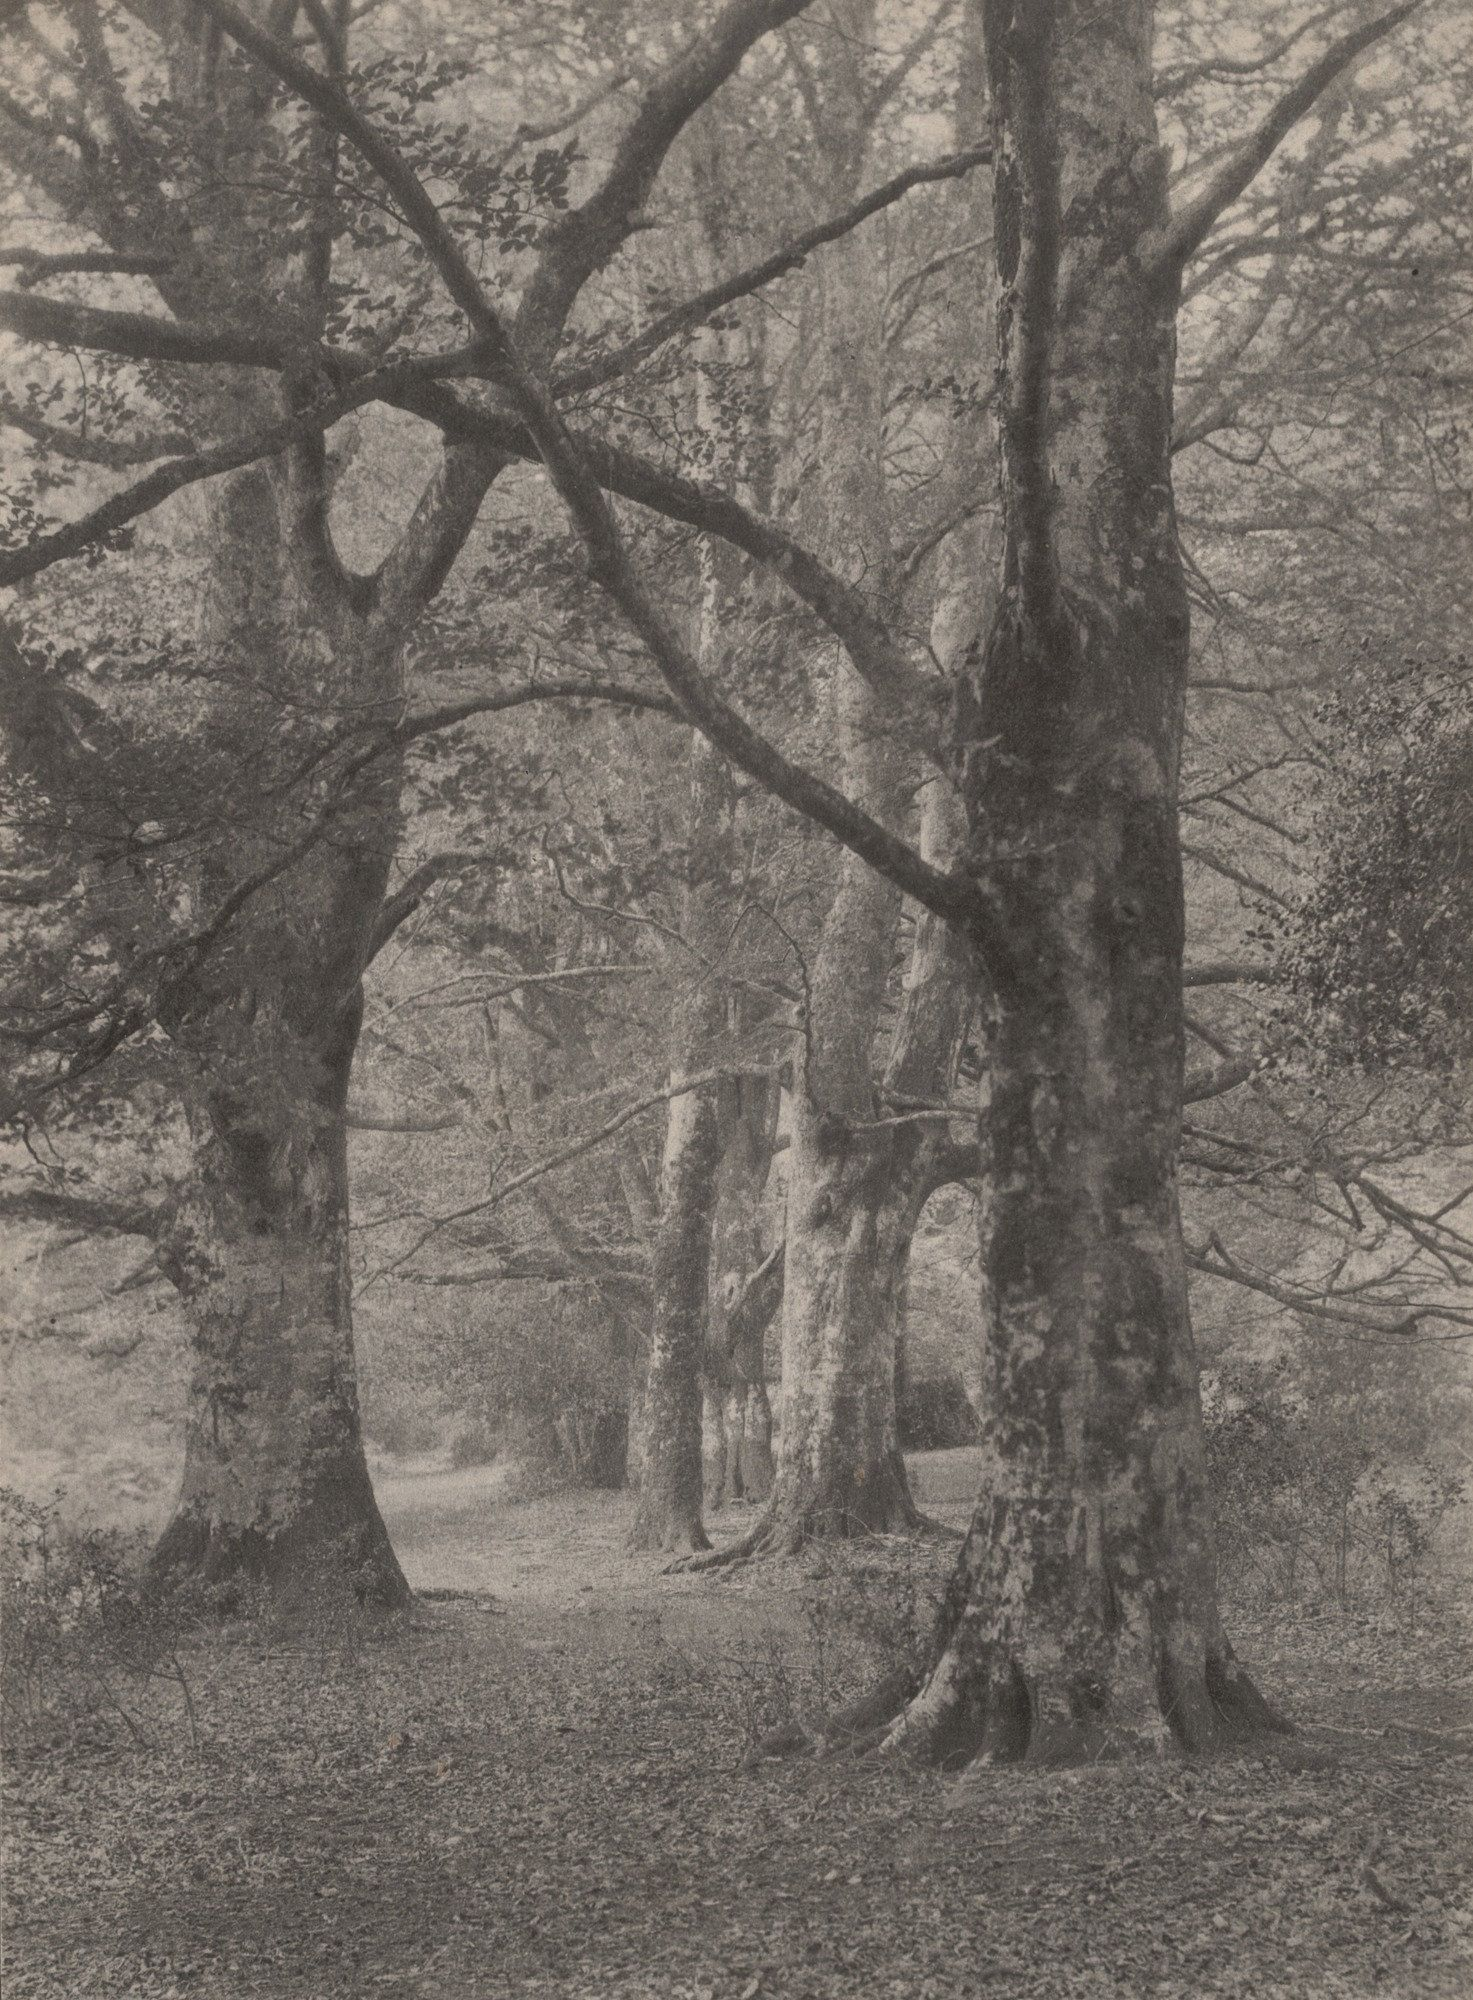 Frederick H Evans A Glade In The New Forest 1891 Landscape Photo Art New Forest